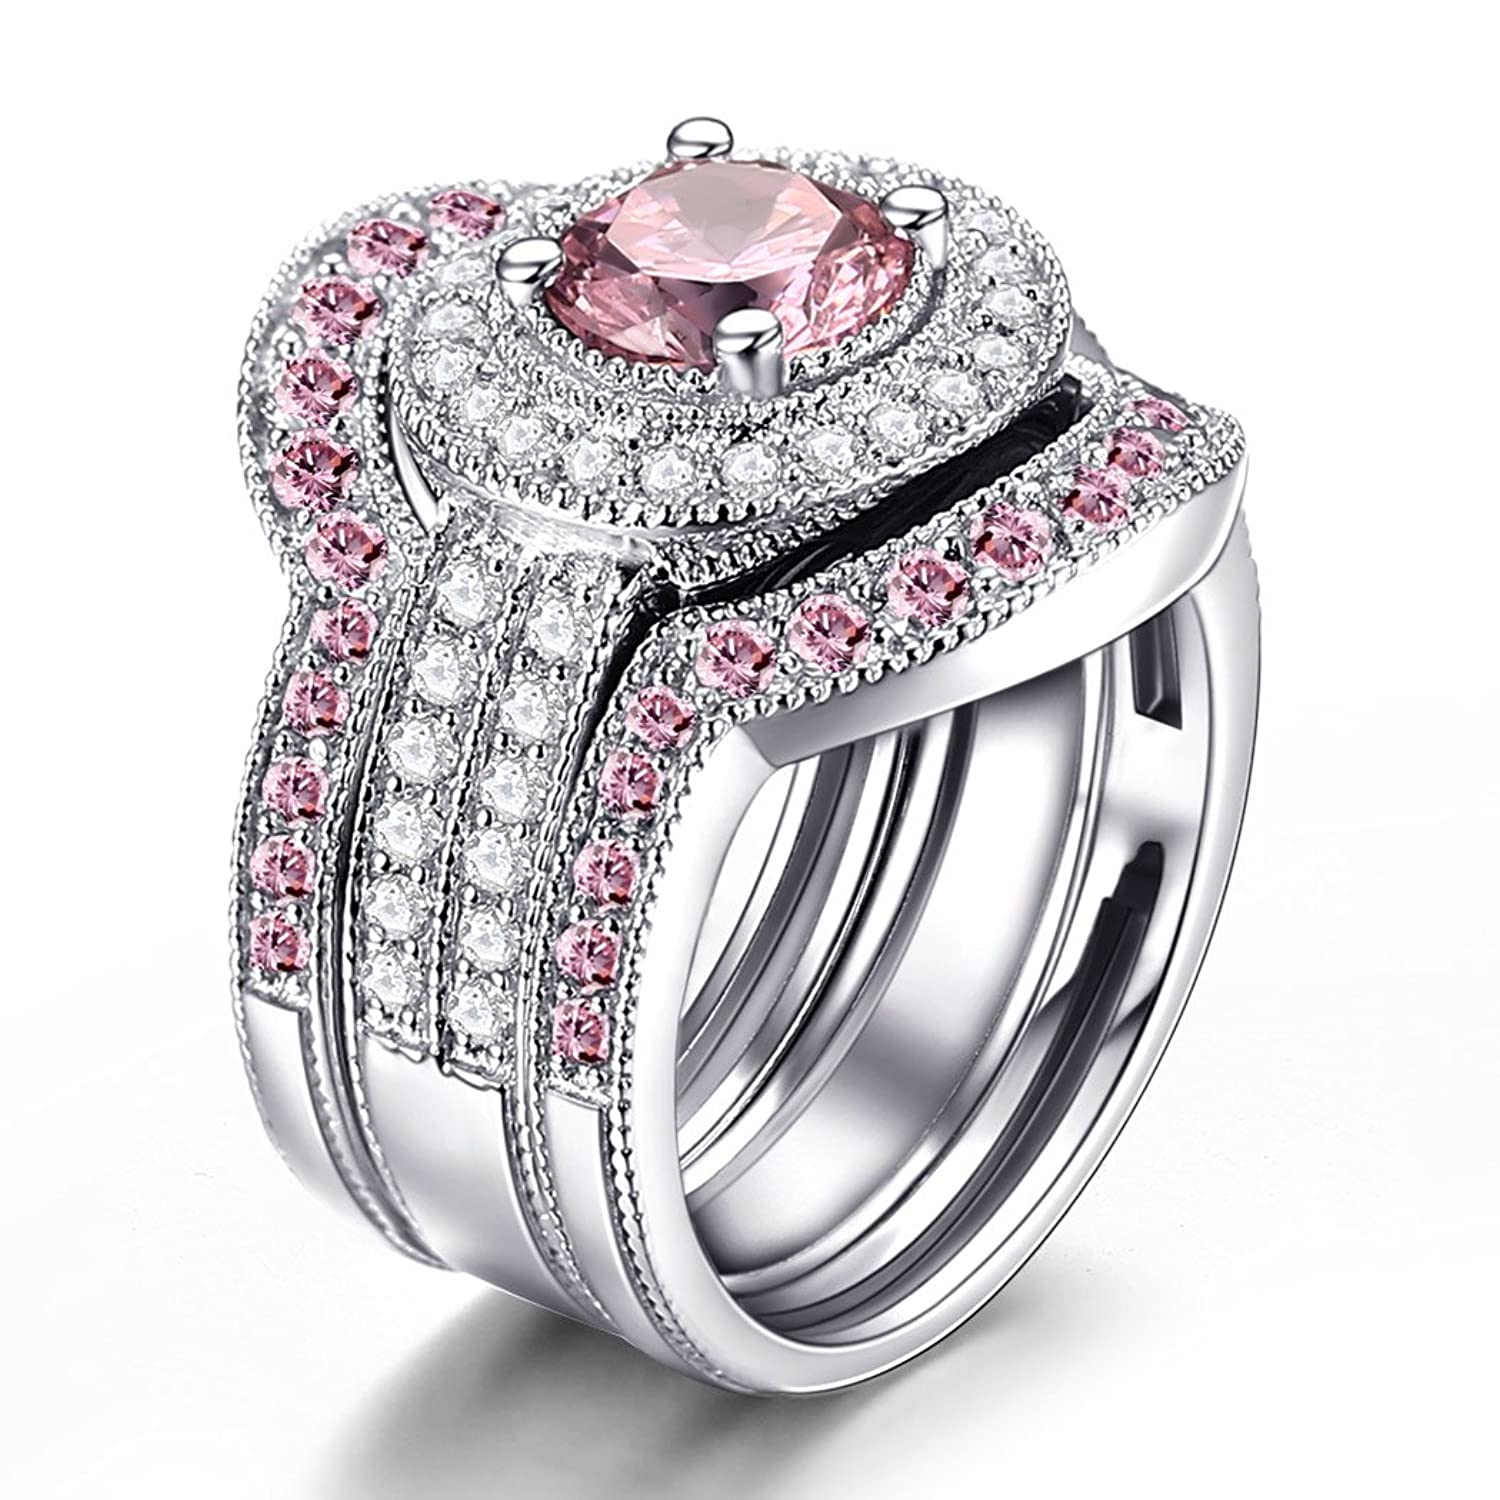 amazoncom caperci 3 piece sterling silver round cz created pink sapphire bridal engagement wedding ring sets jewelry - 3 Piece Wedding Ring Set